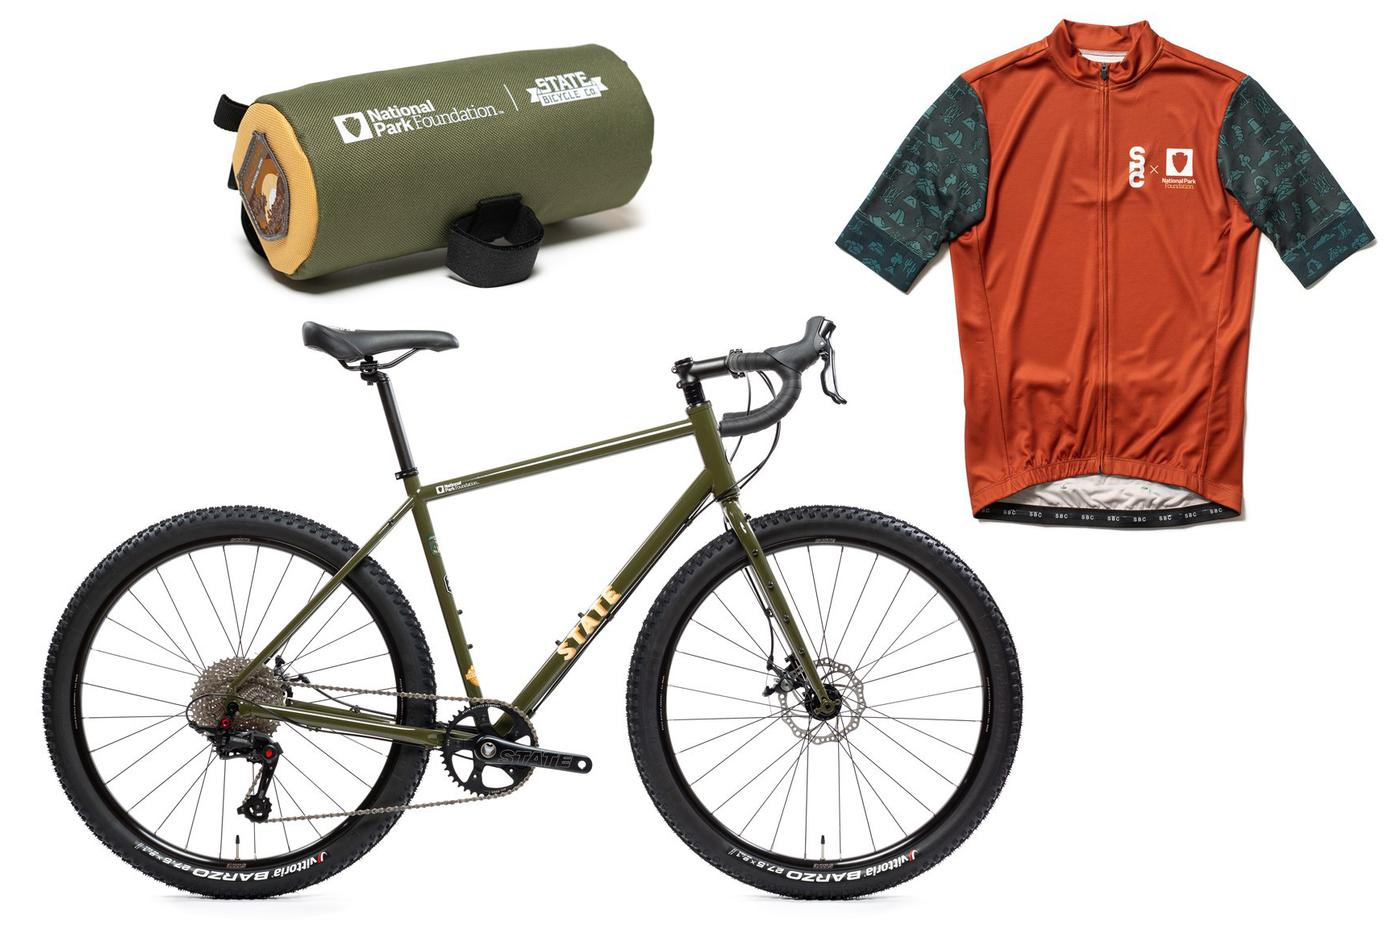 State Bicycle Co Teams Up with the National Parks Foundation